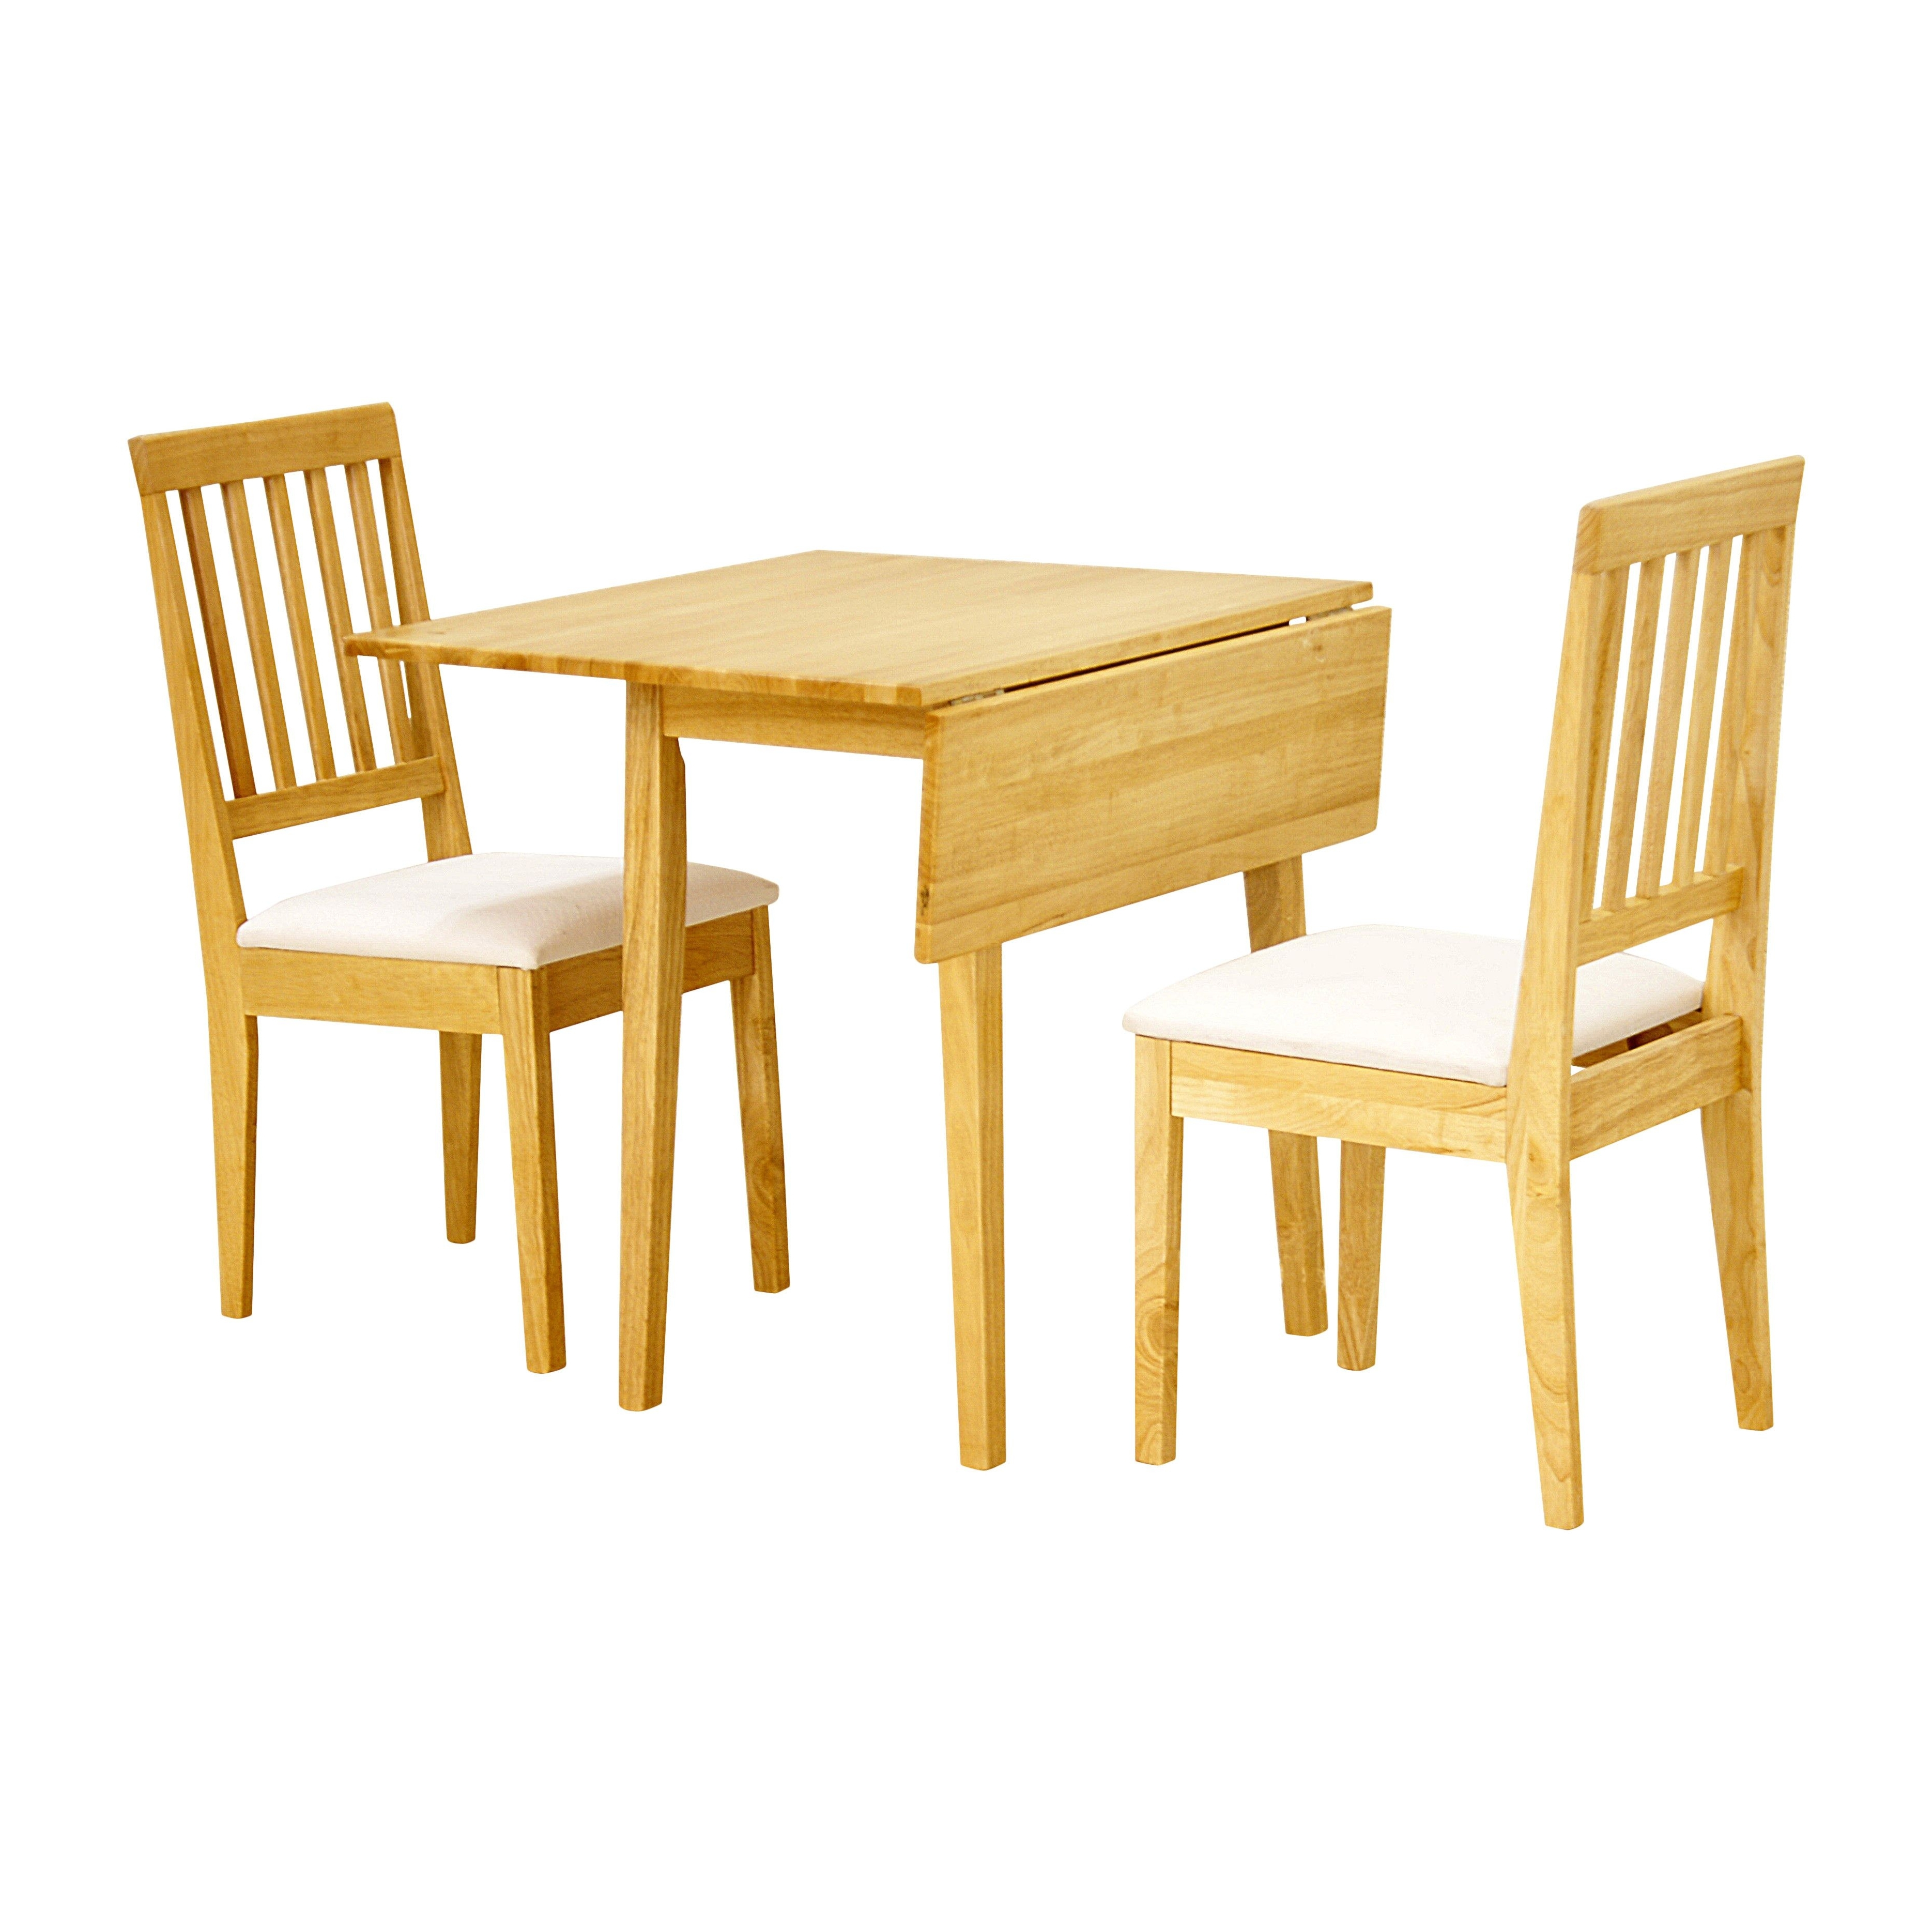 Small Oak Dining Table And 2 Chairs – Go To Chinesefurnitureshop Within Well Known Small Extendable Dining Table Sets (View 12 of 25)